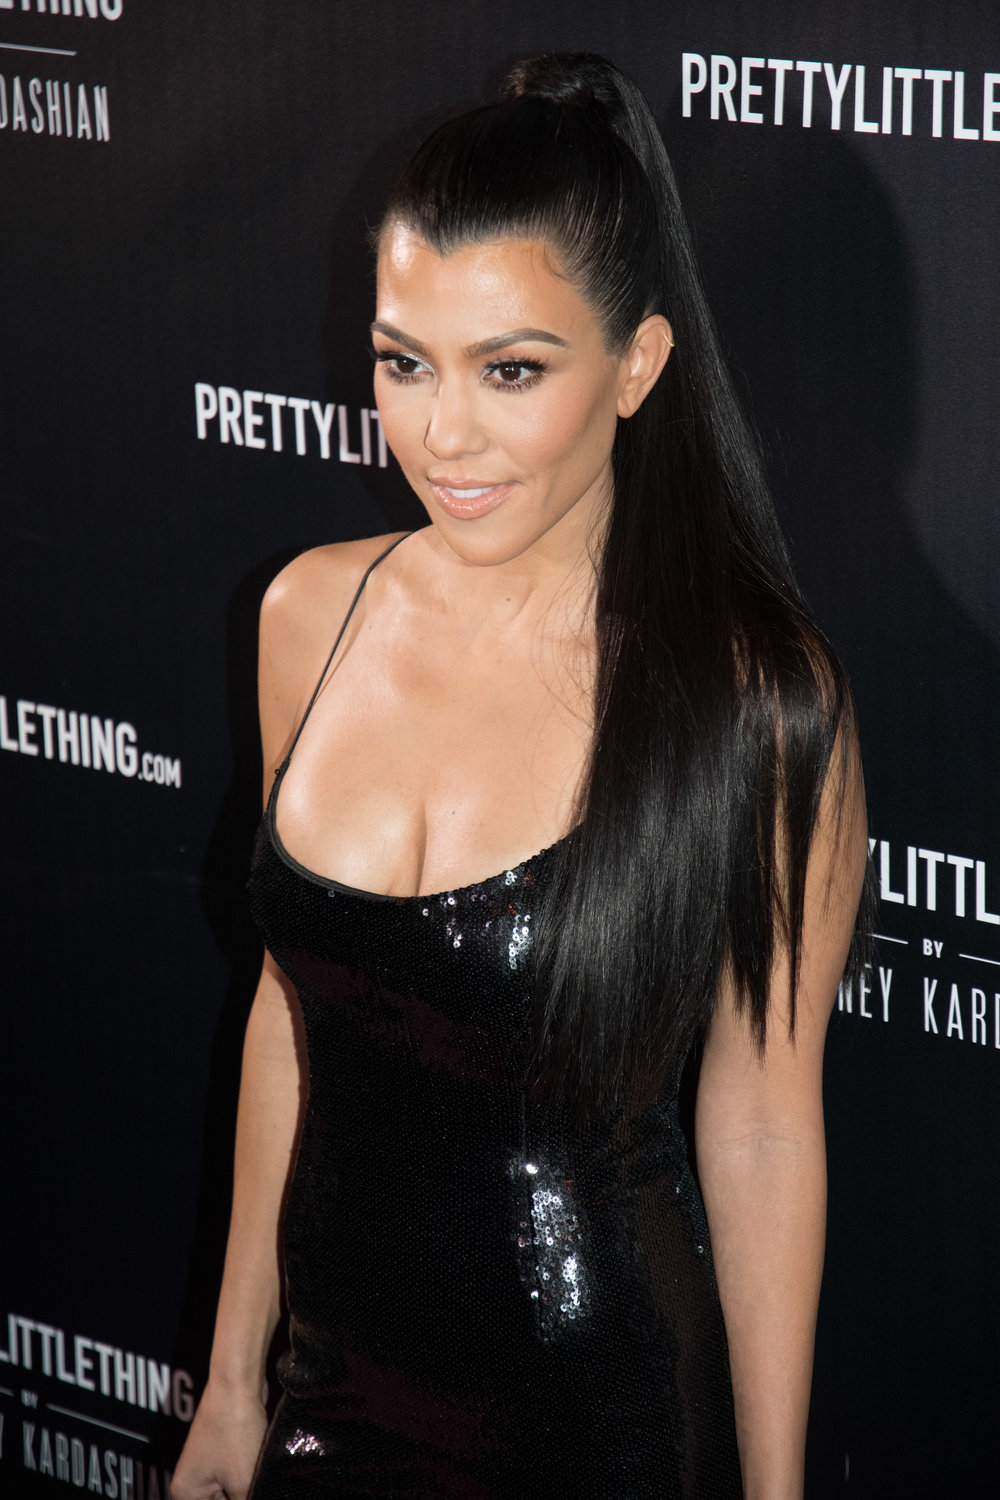 Kourt rocked a dress and strappy heels from her new collection. Photo Credit: Pretty Little Thing PrettyLittleThing by Kourtney Kardashian Black Strappy Sequin Bodycon Dress $45 PrettyLittleThing by Kourtney Kardashian Black Pointed Patent Stiletto Heels $55